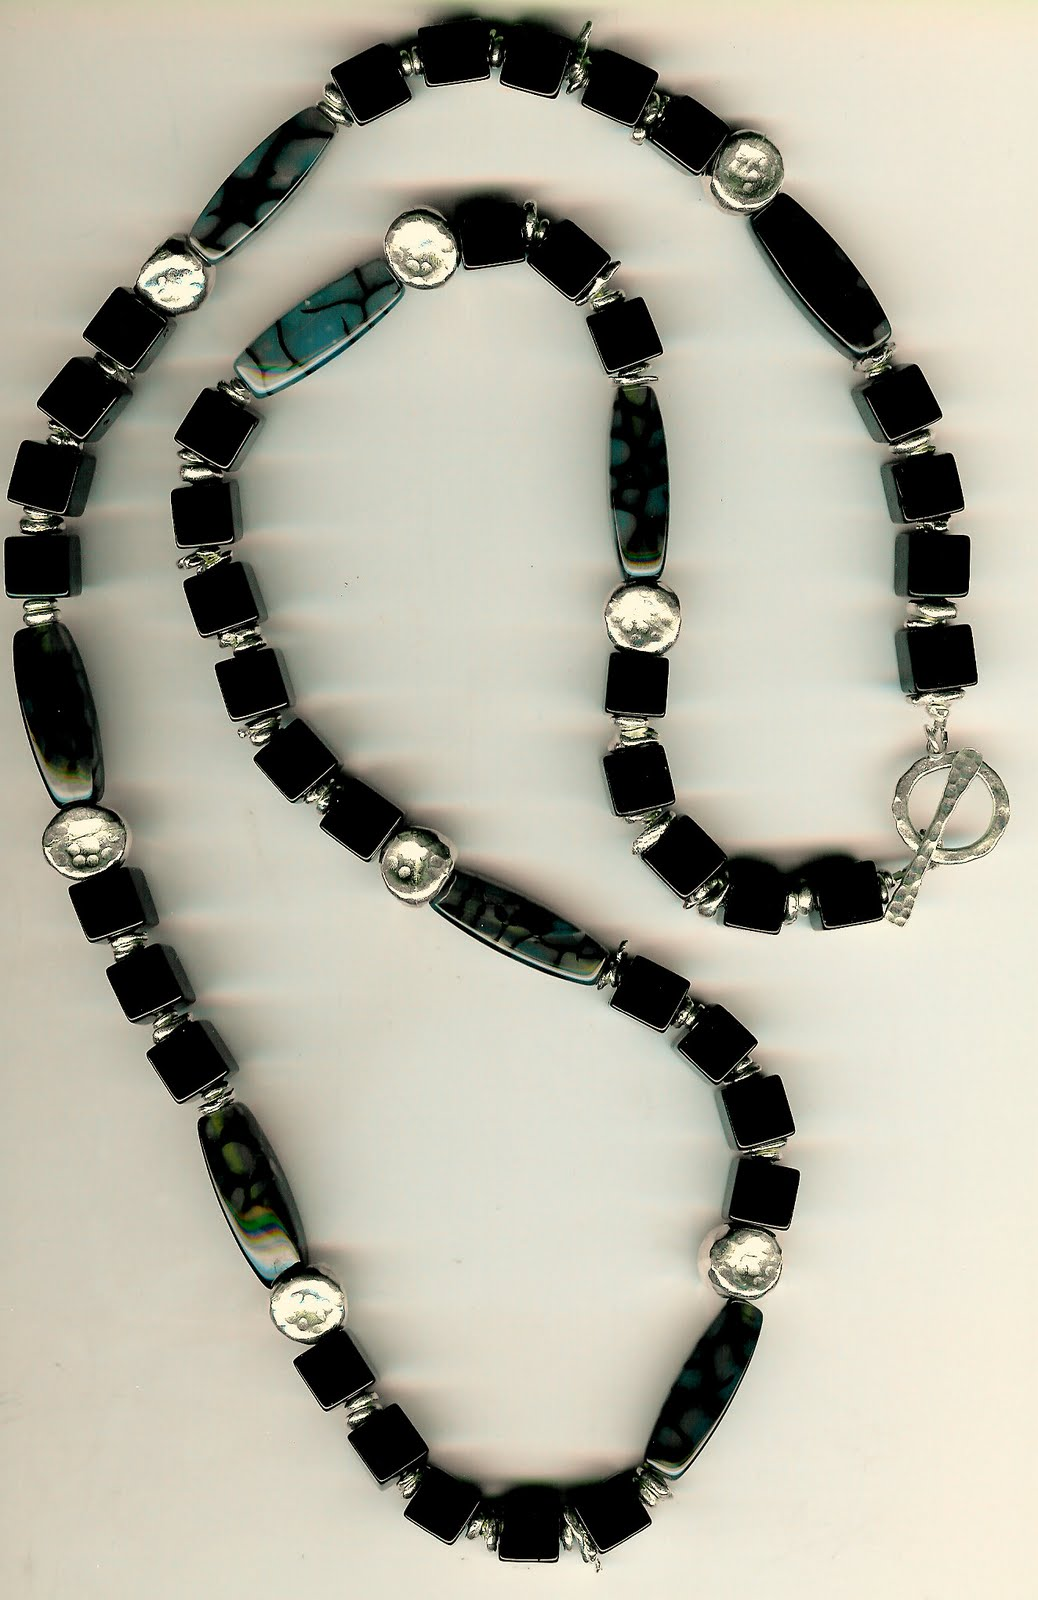 212. Black Onyx, Variegated Agate with Karen Hill Thai Sterling Silver